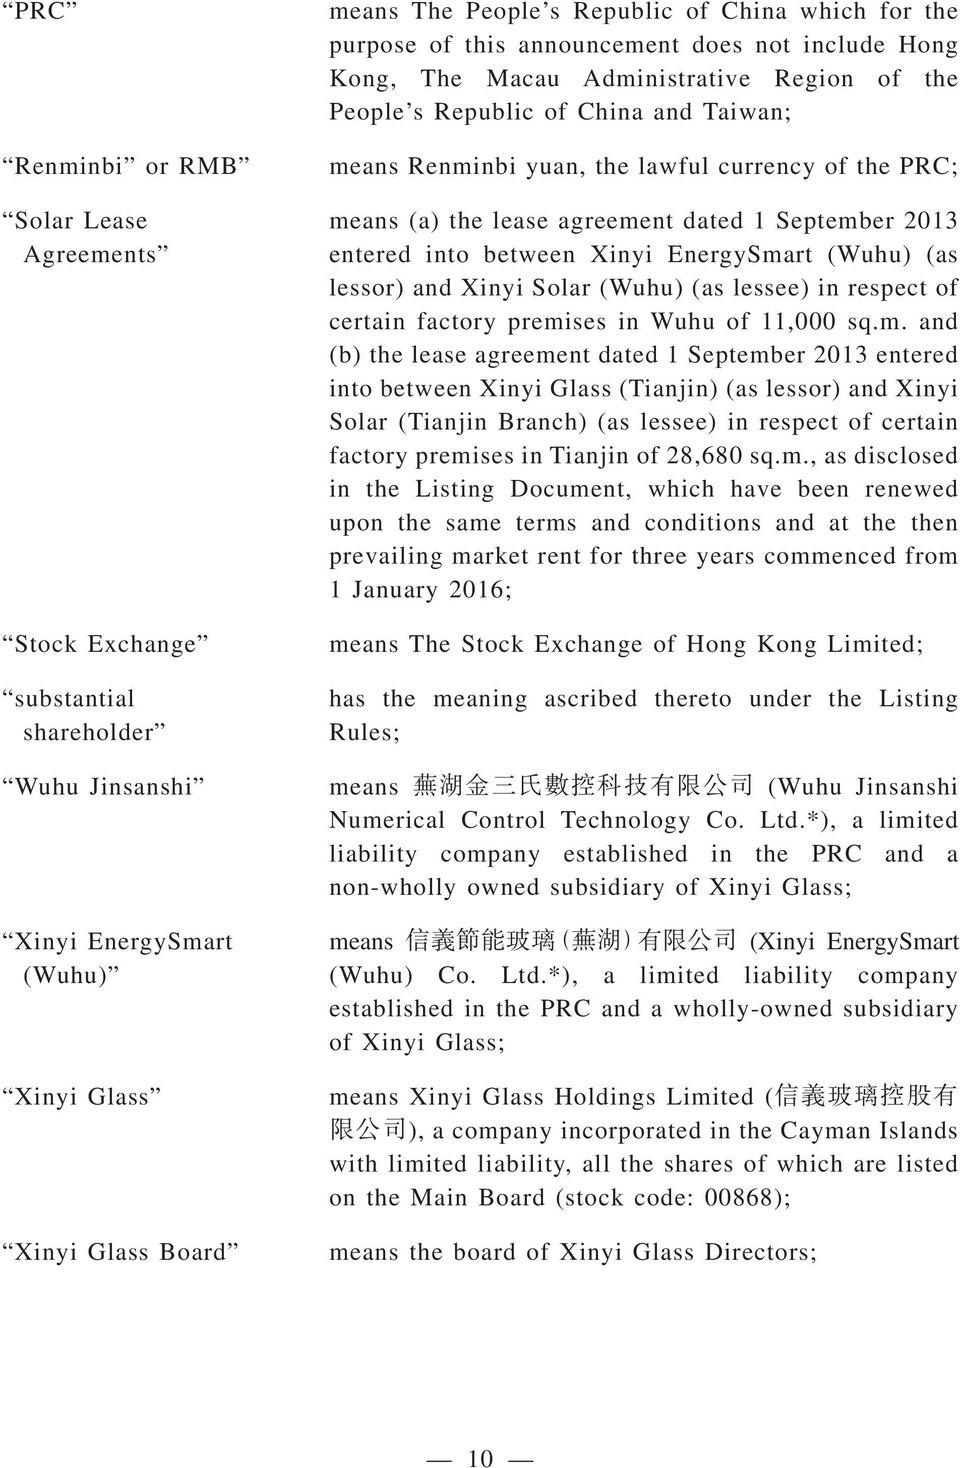 (a) the lease agreement dated 1 September 2013 entered into between Xinyi EnergySmart (Wuhu) (as lessor) and Xinyi Solar (Wuhu) (as lessee) in respect of certain factory premises in Wuhu of 11,000 sq.